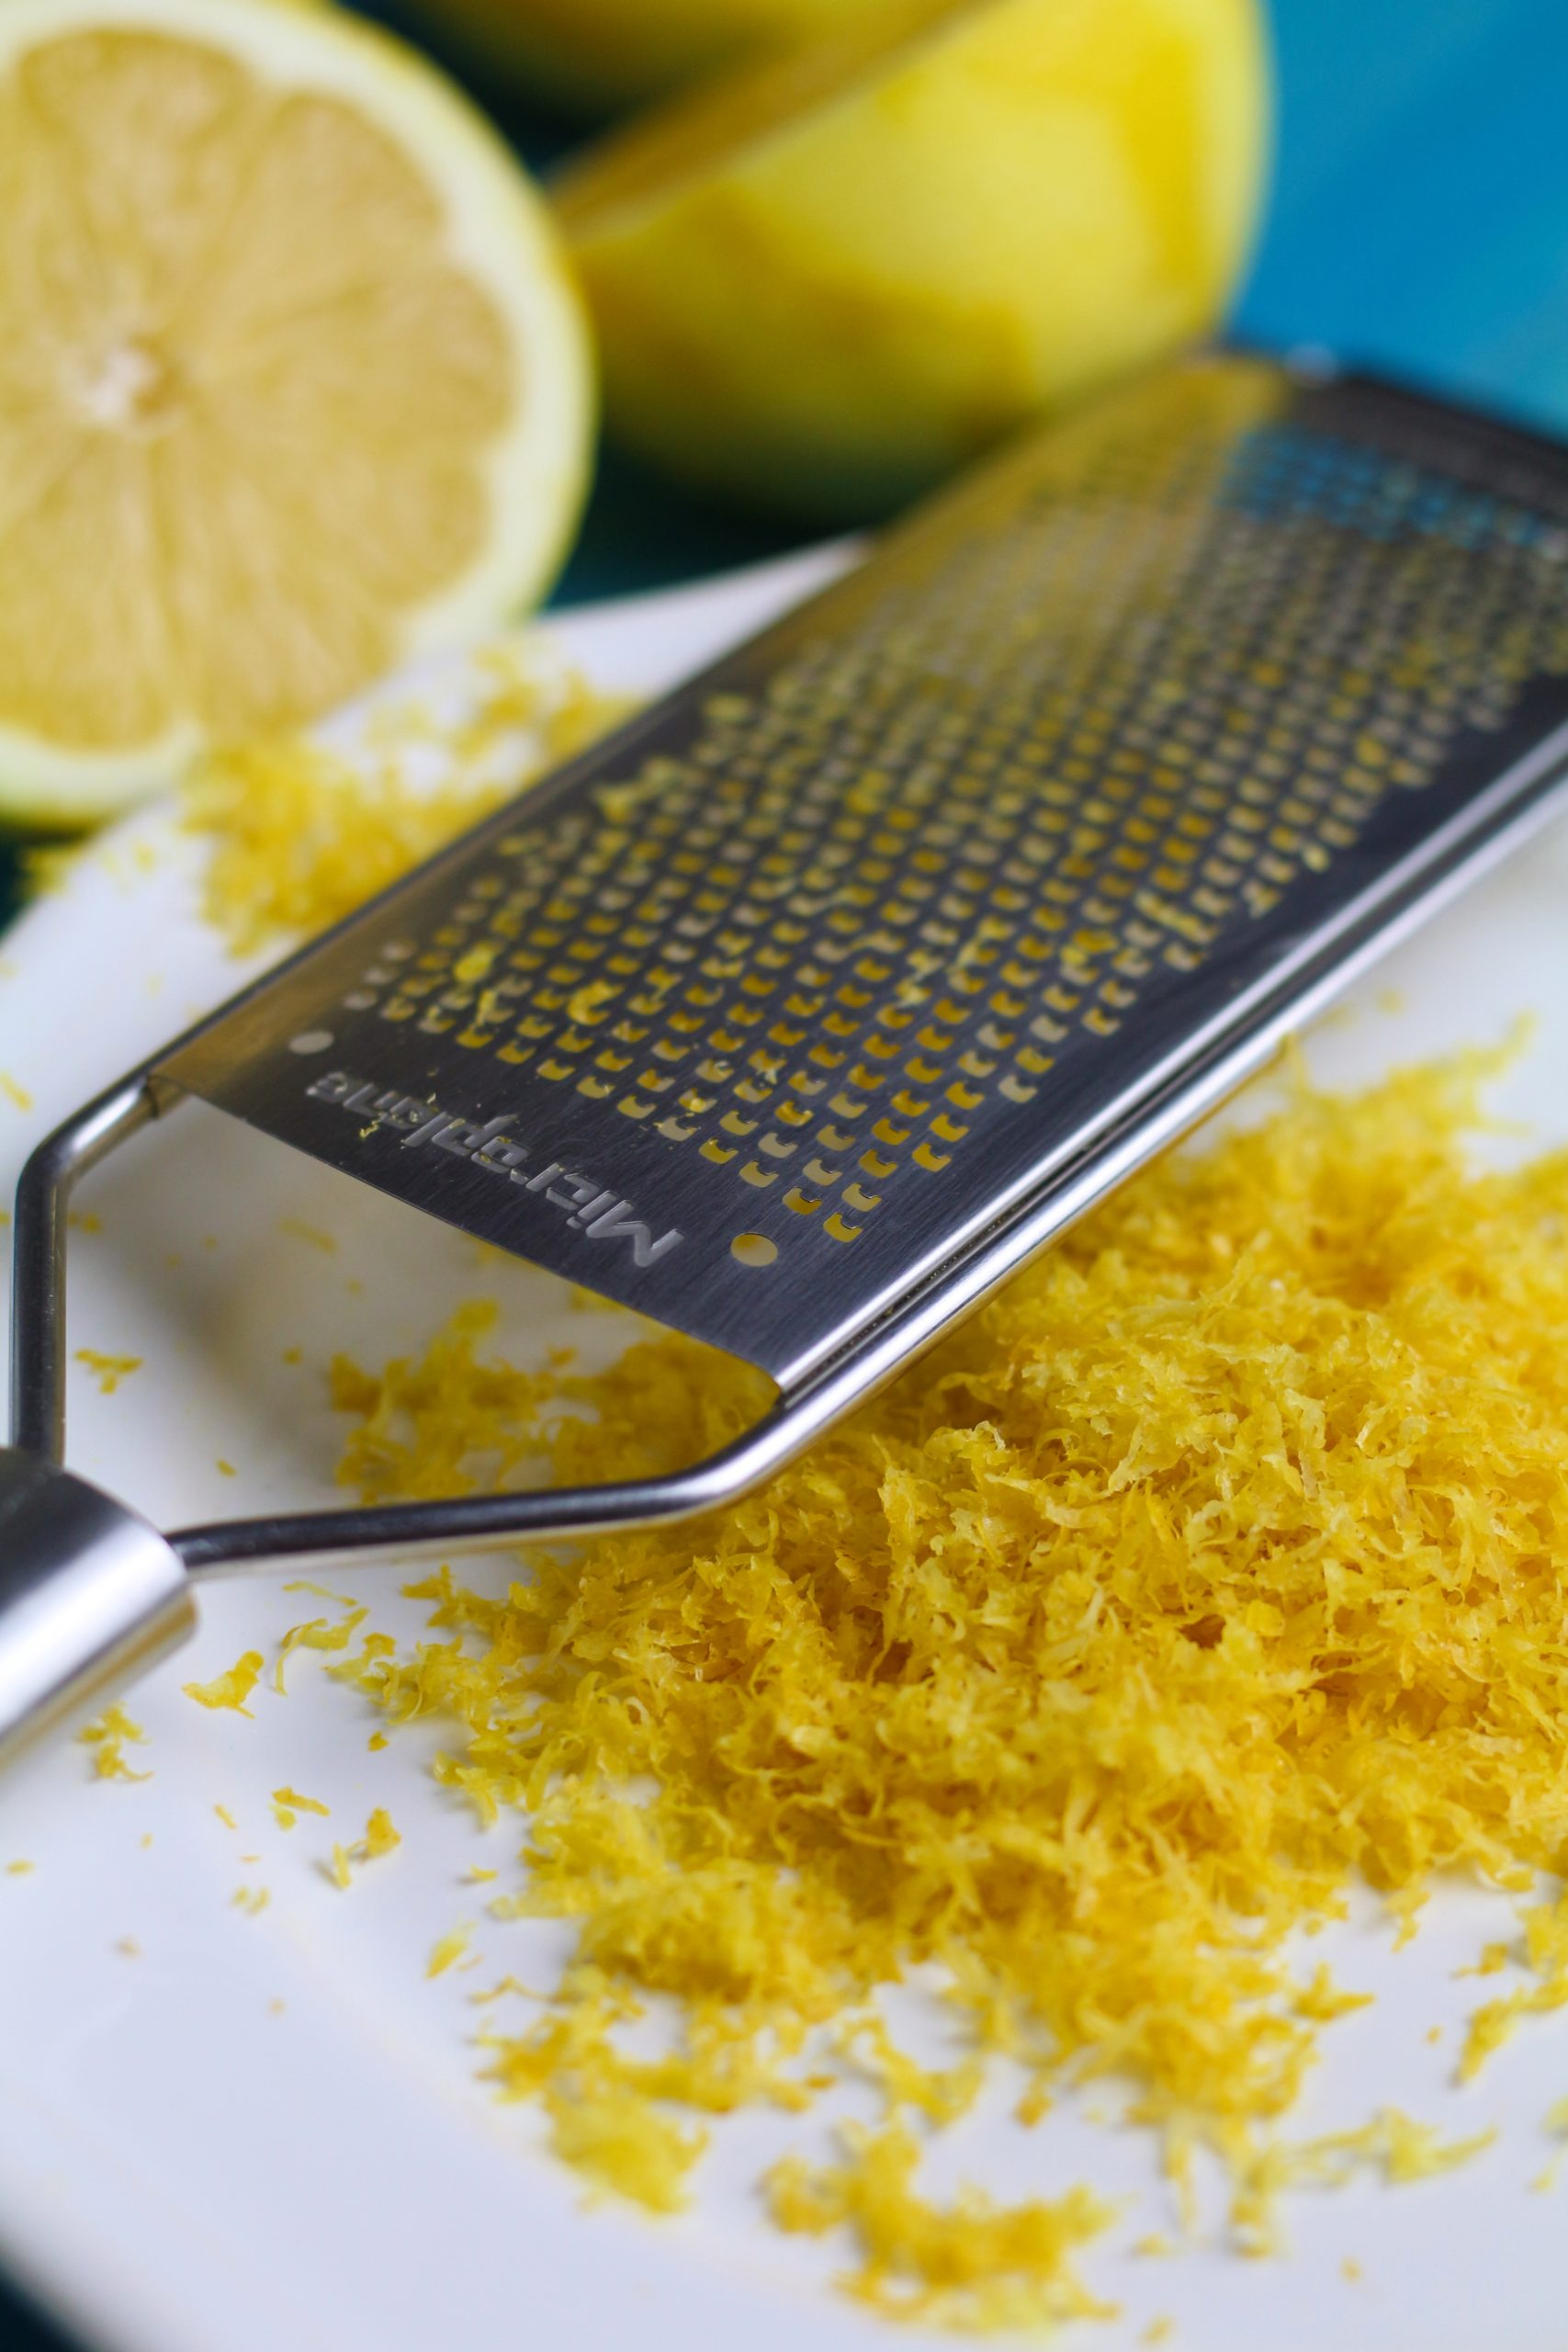 Lemon Zest and Microplane